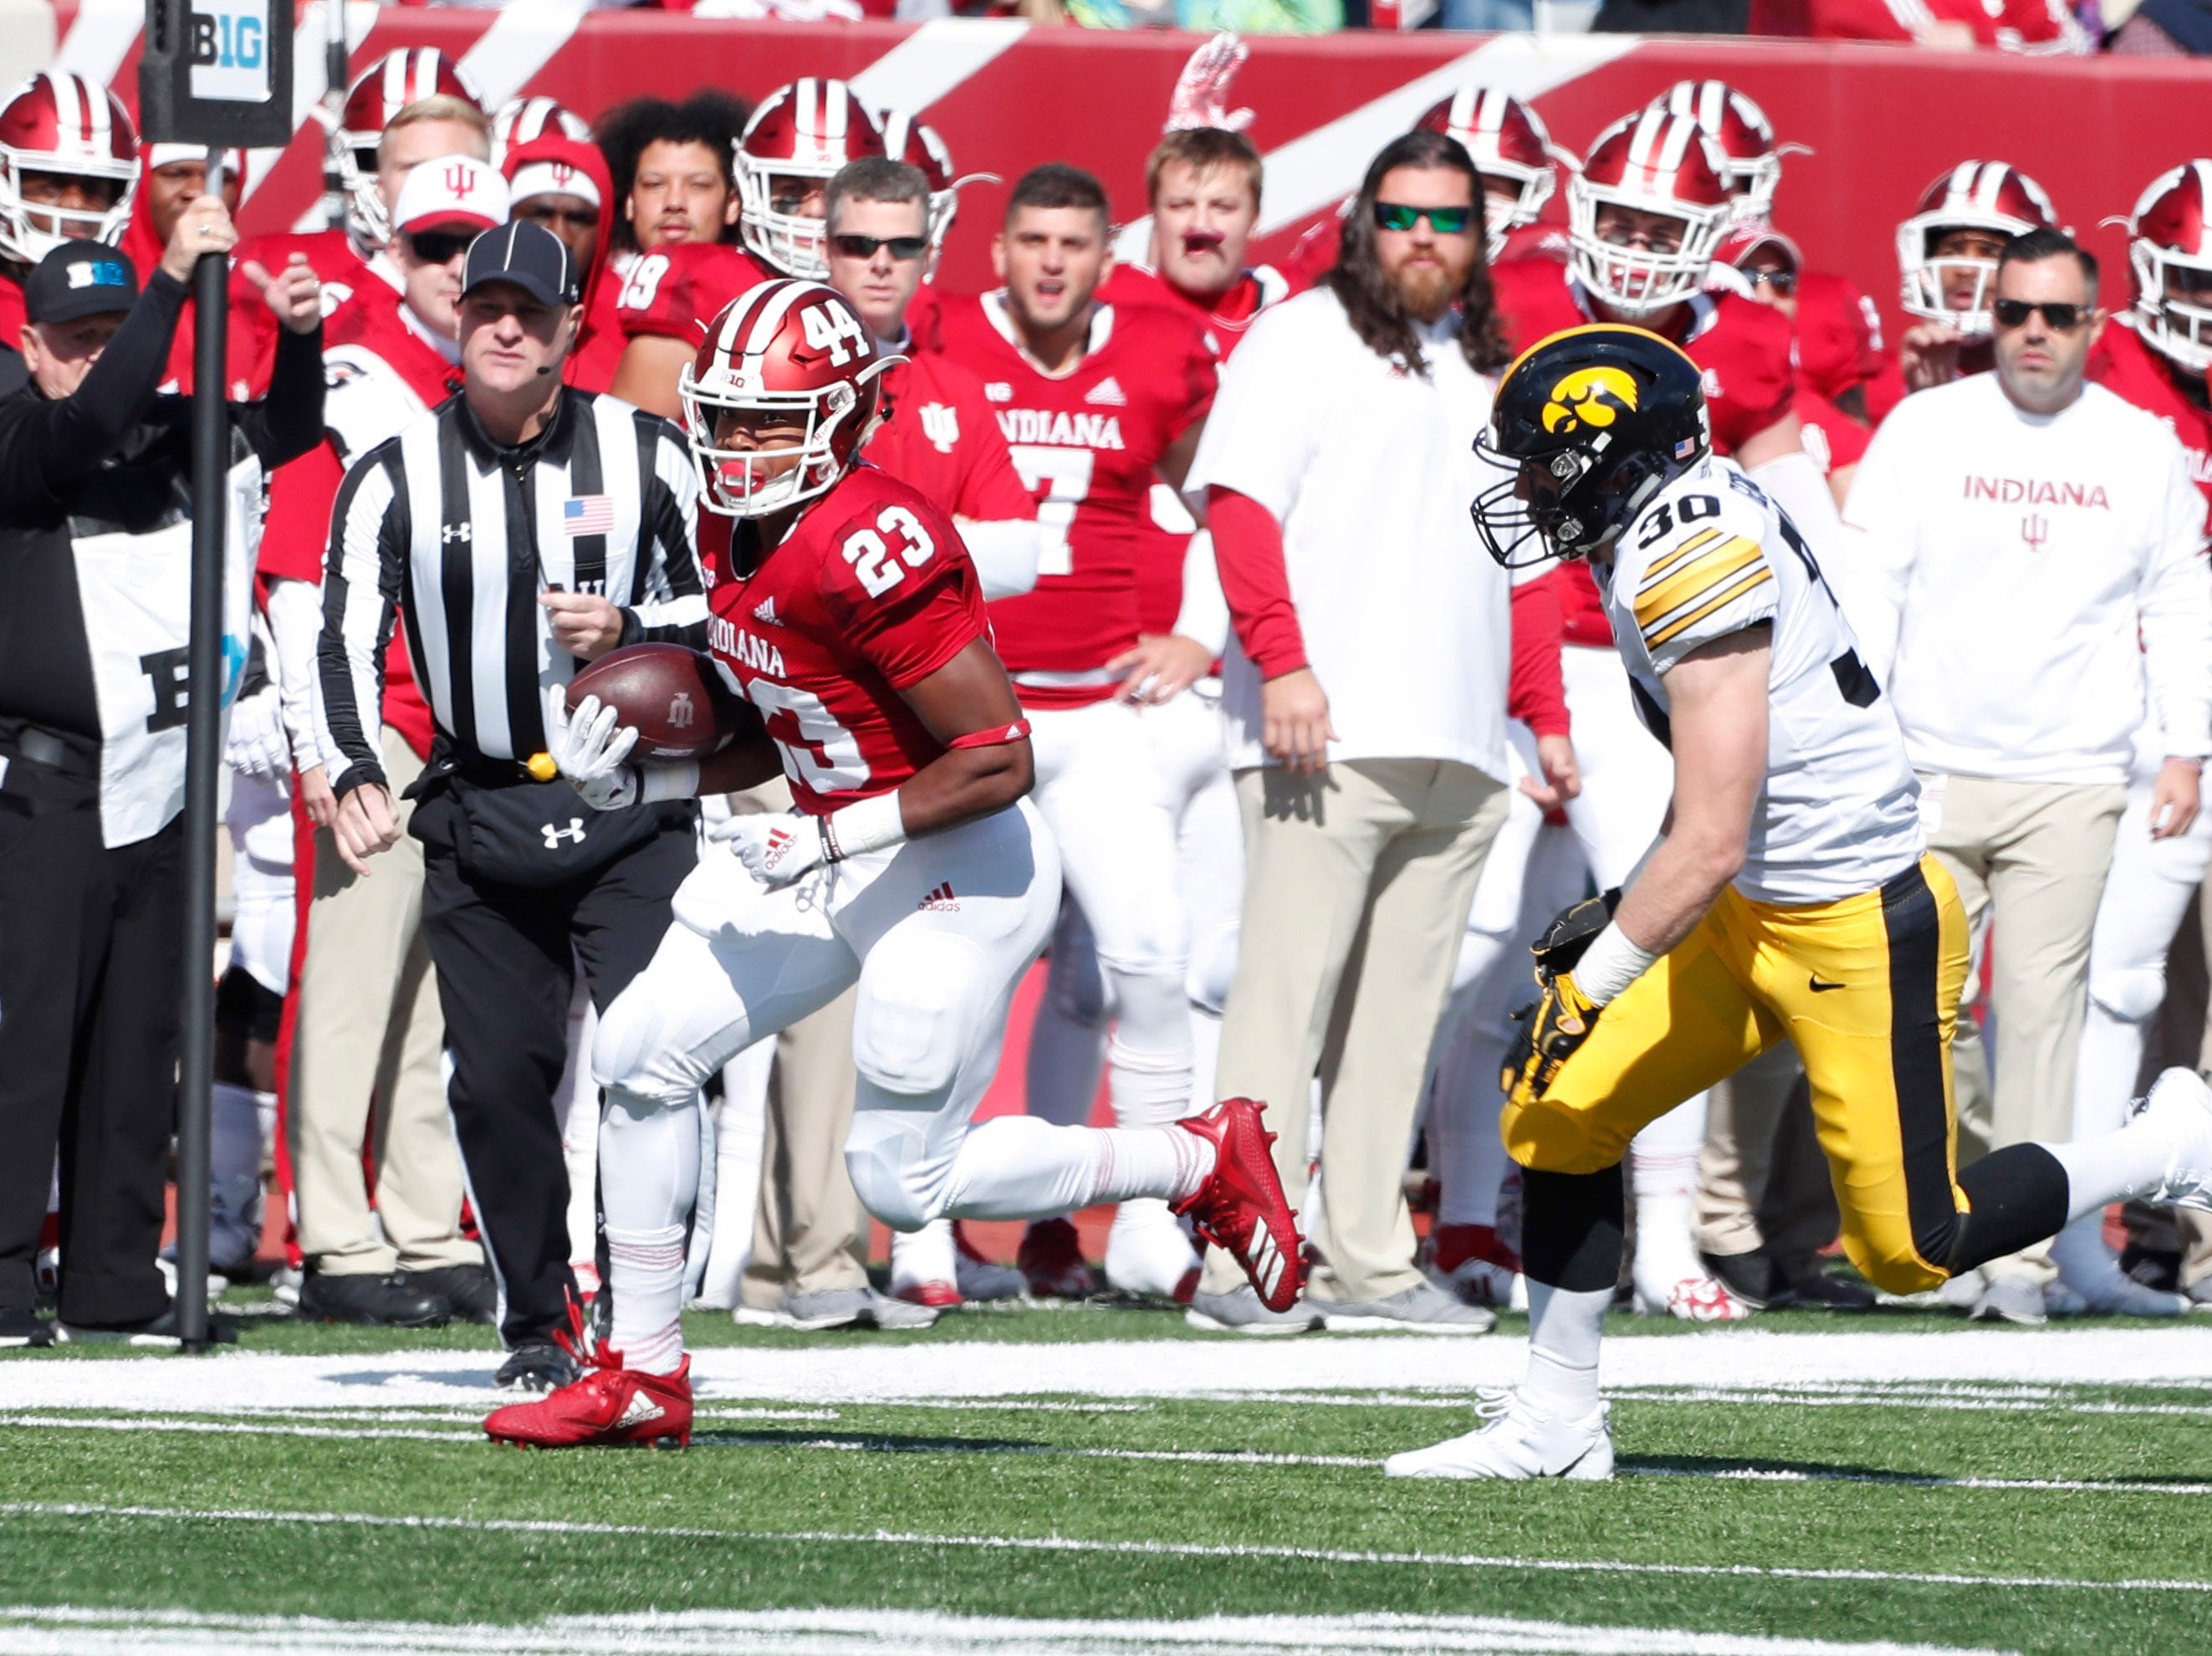 Indiana Hoosiers running back Ronnie Walker Jr. (23) runs with the ball against  Iowa Hawkeyes defensive back Jake Gervase (30) during the first quarter at Memorial Stadium.